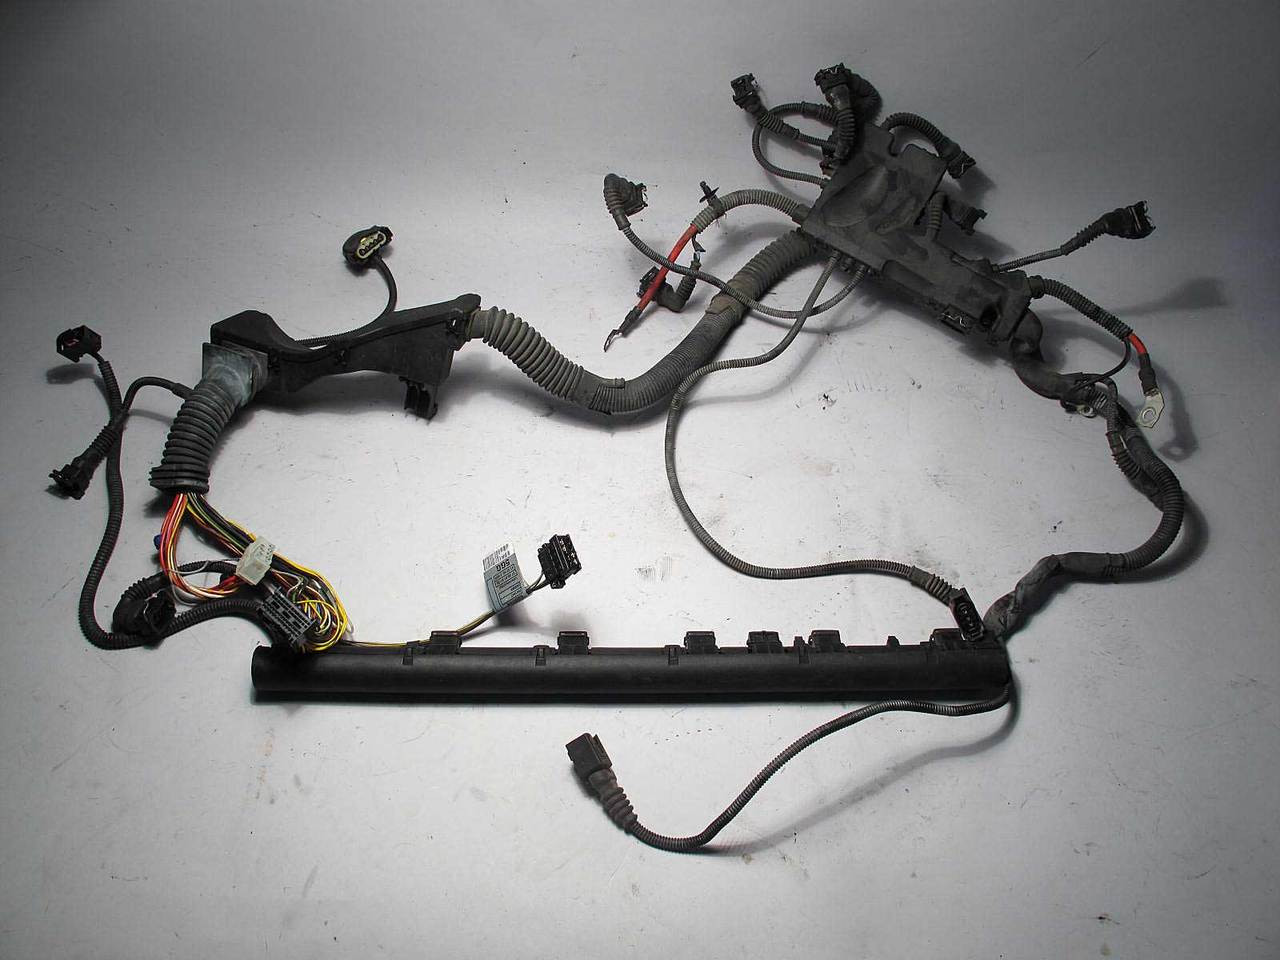 E46 Engine Wire Harness Wiring Library Mercedes W140 Fuel Injection Oem Cables Cabling Bmw M3 M S54 Complete 2001 2004 Used